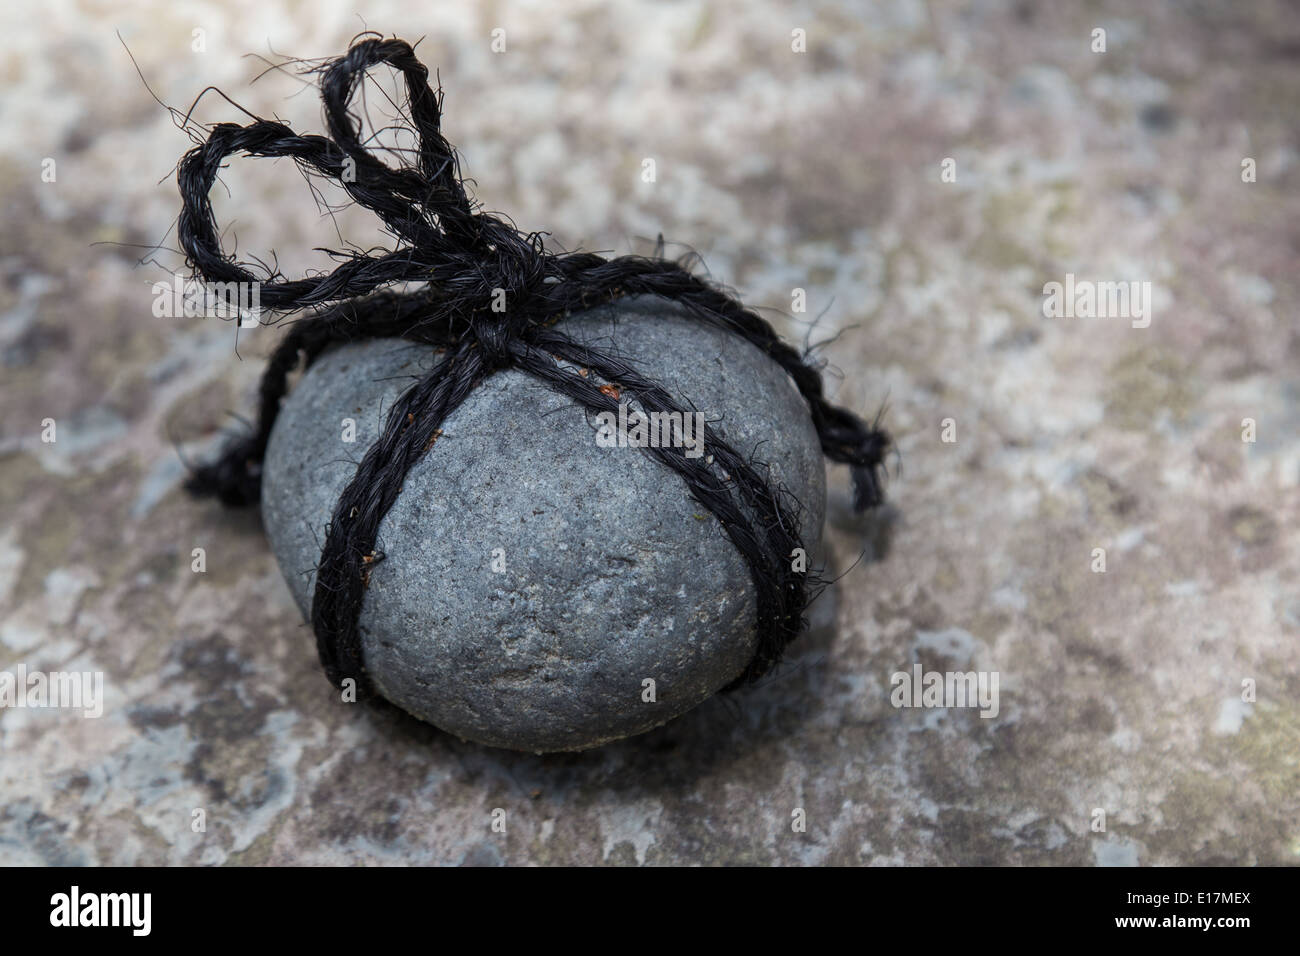 Tome Ishi is a stone is wrapped in rope and placed in a path or in front of a gate. It means 'do not enter'. - Stock Image